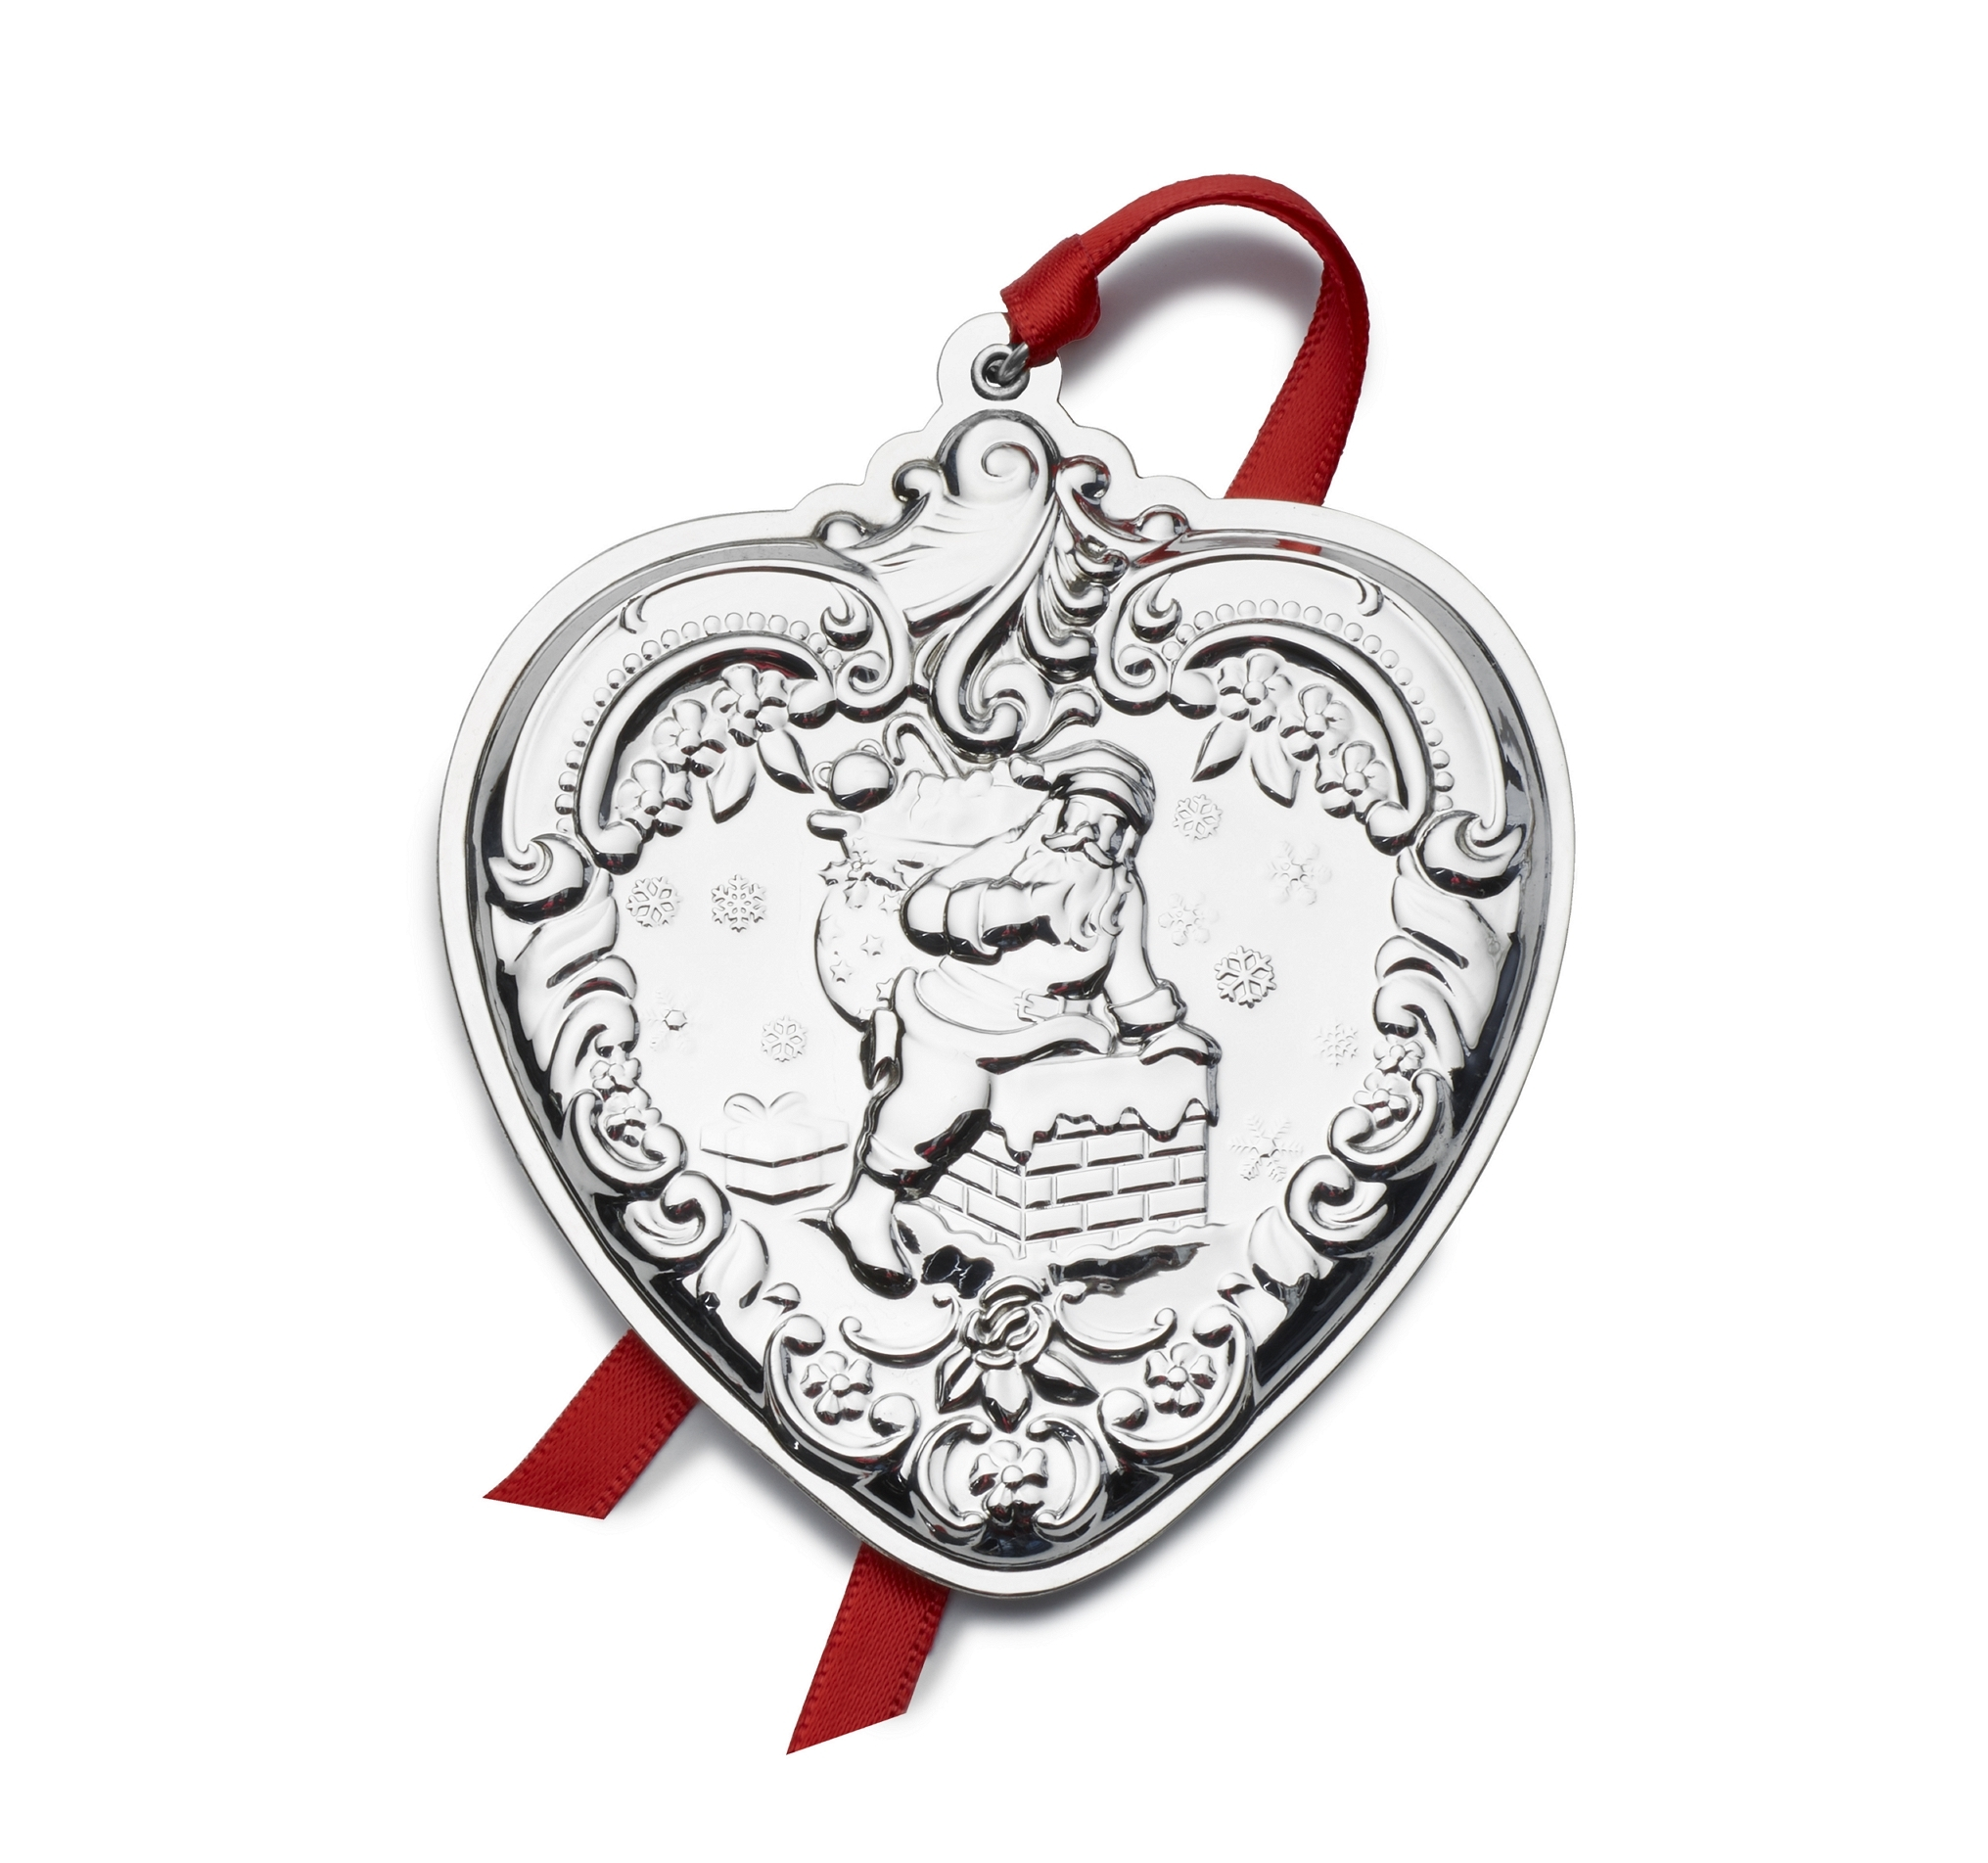 #93747 - Ornaments by Wallace 2020 GRANDE BAROQUE HEART 29th Edition